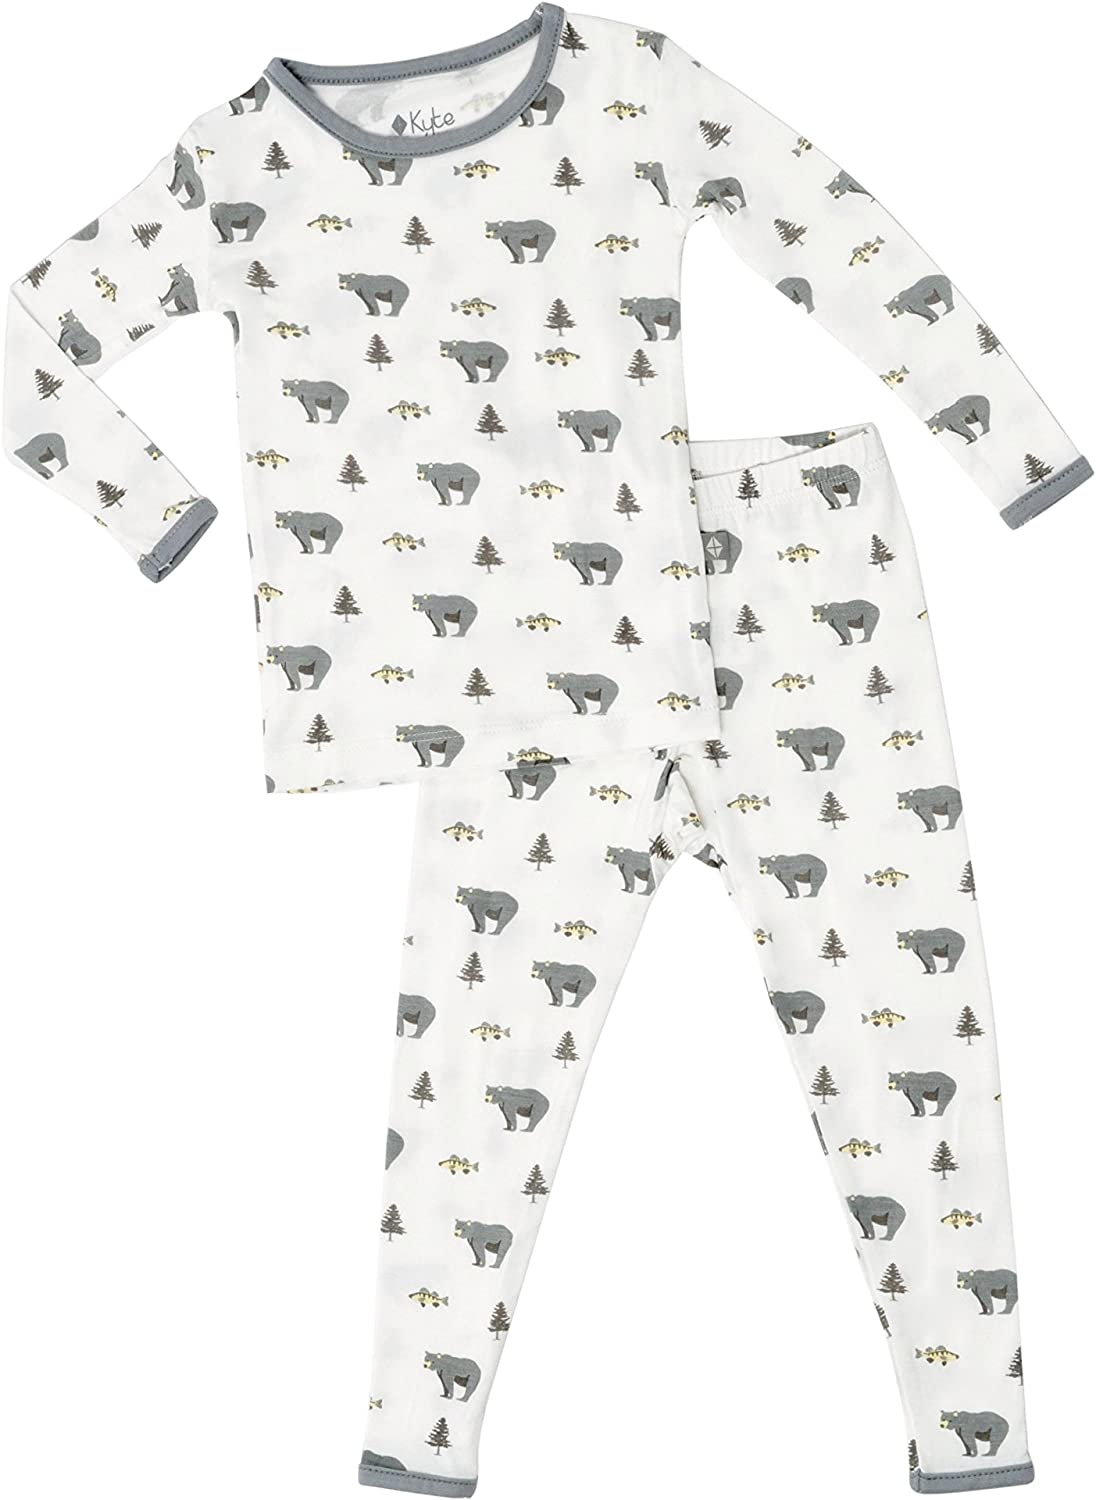 Printed Patterns KYTE BABY Bundlers 0-6 Months Baby Sleeper Gowns Made of Soft Organic Bamboo Rayon Material